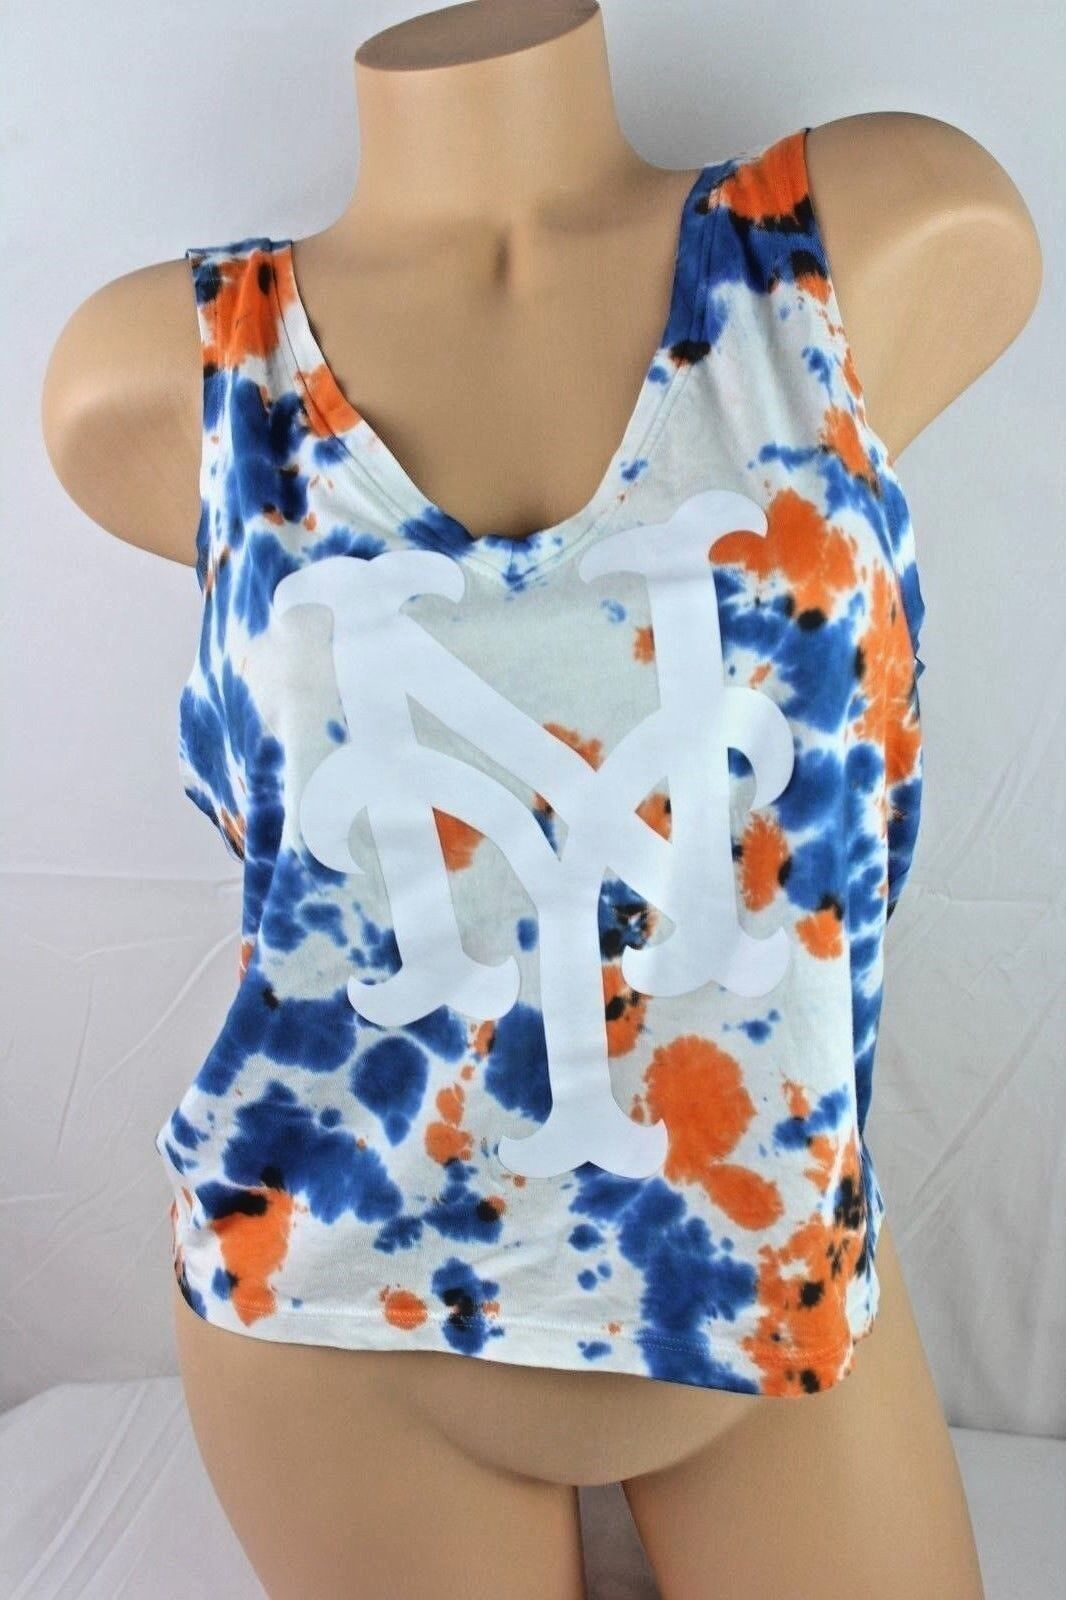 VICTORIA'S SECRET PINK METS TANK TOP EXCLUSIVE MLB COLLECTION SMALL NEW H188